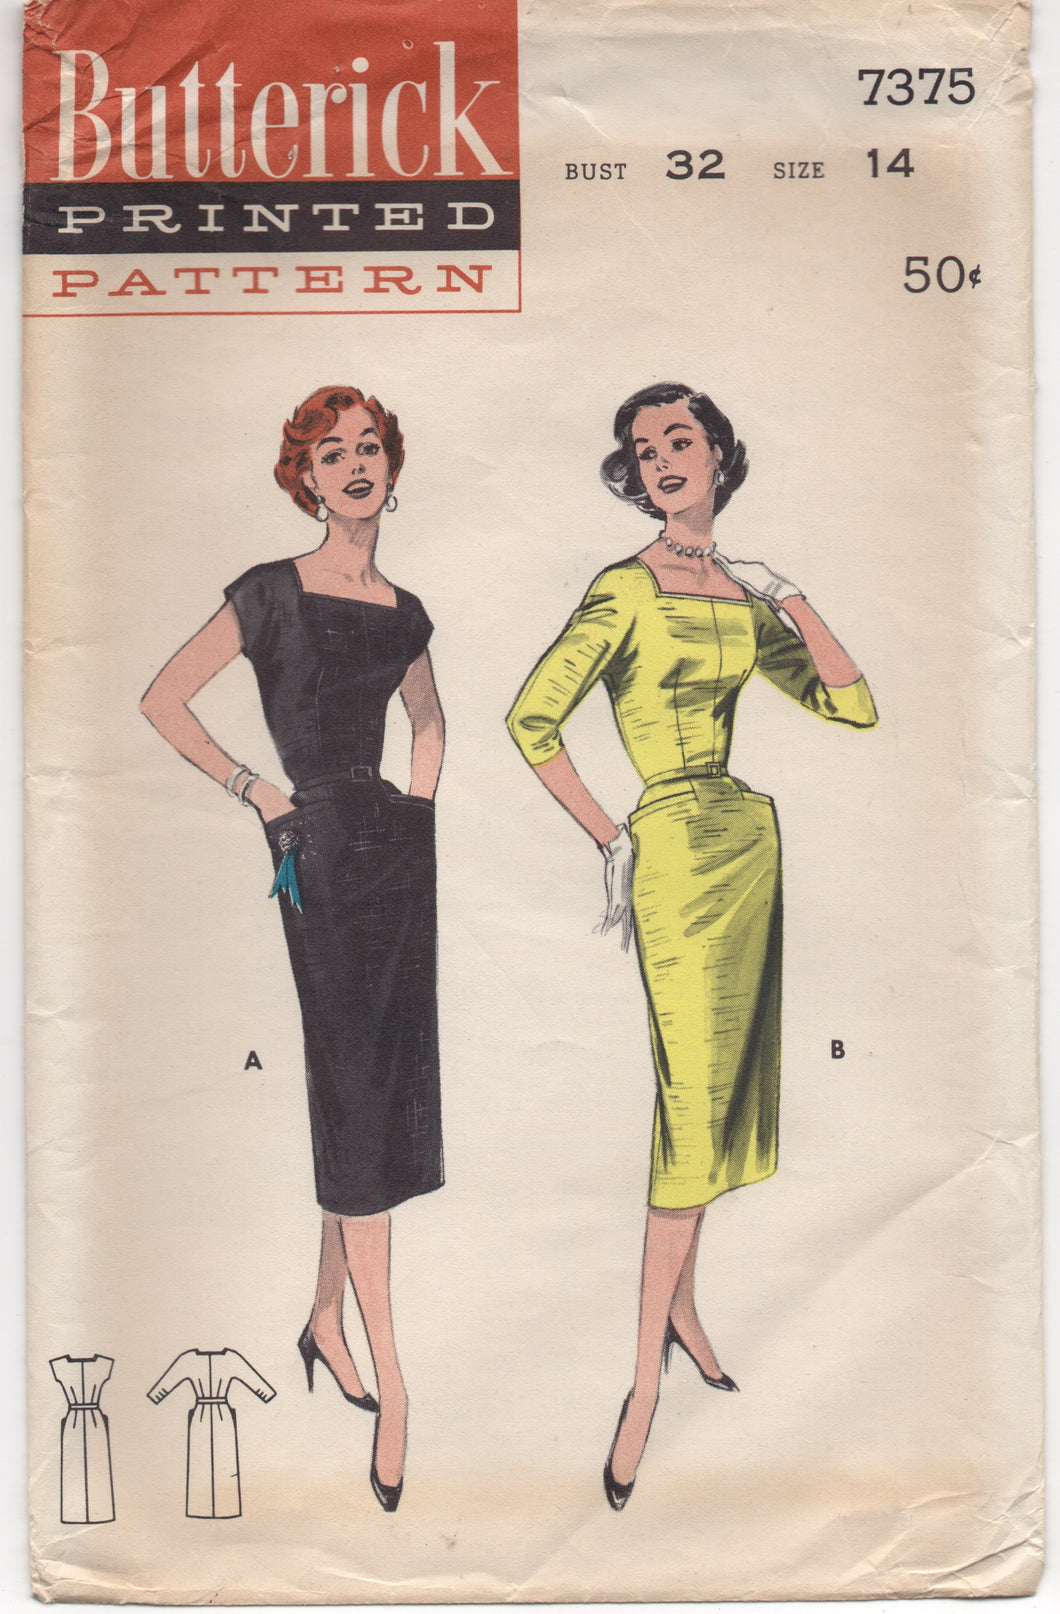 1950's Butterick One Piece Slim Fit Dress with Square Neckline - Bust 32